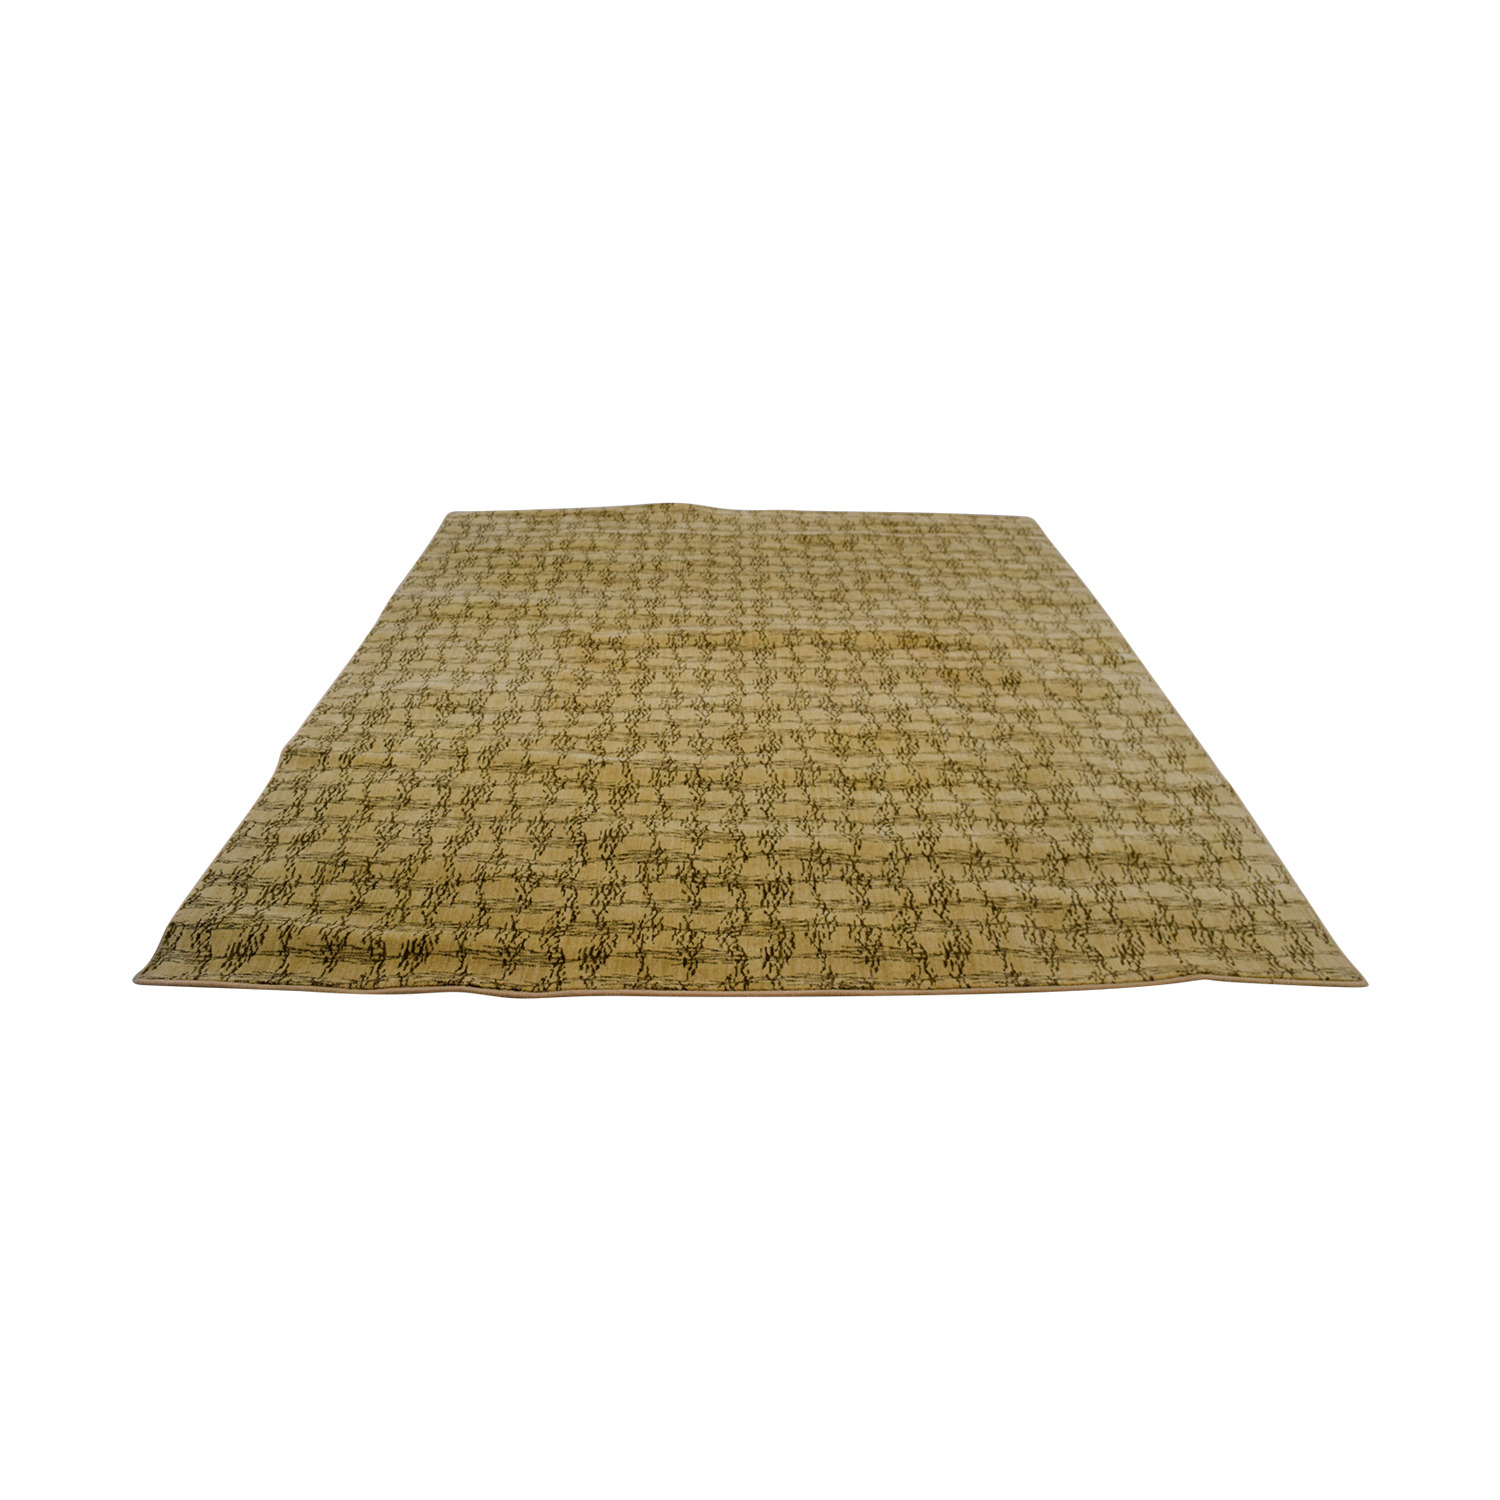 Ethan Allen Ethan Allen Tan Abstract Rug dimensions